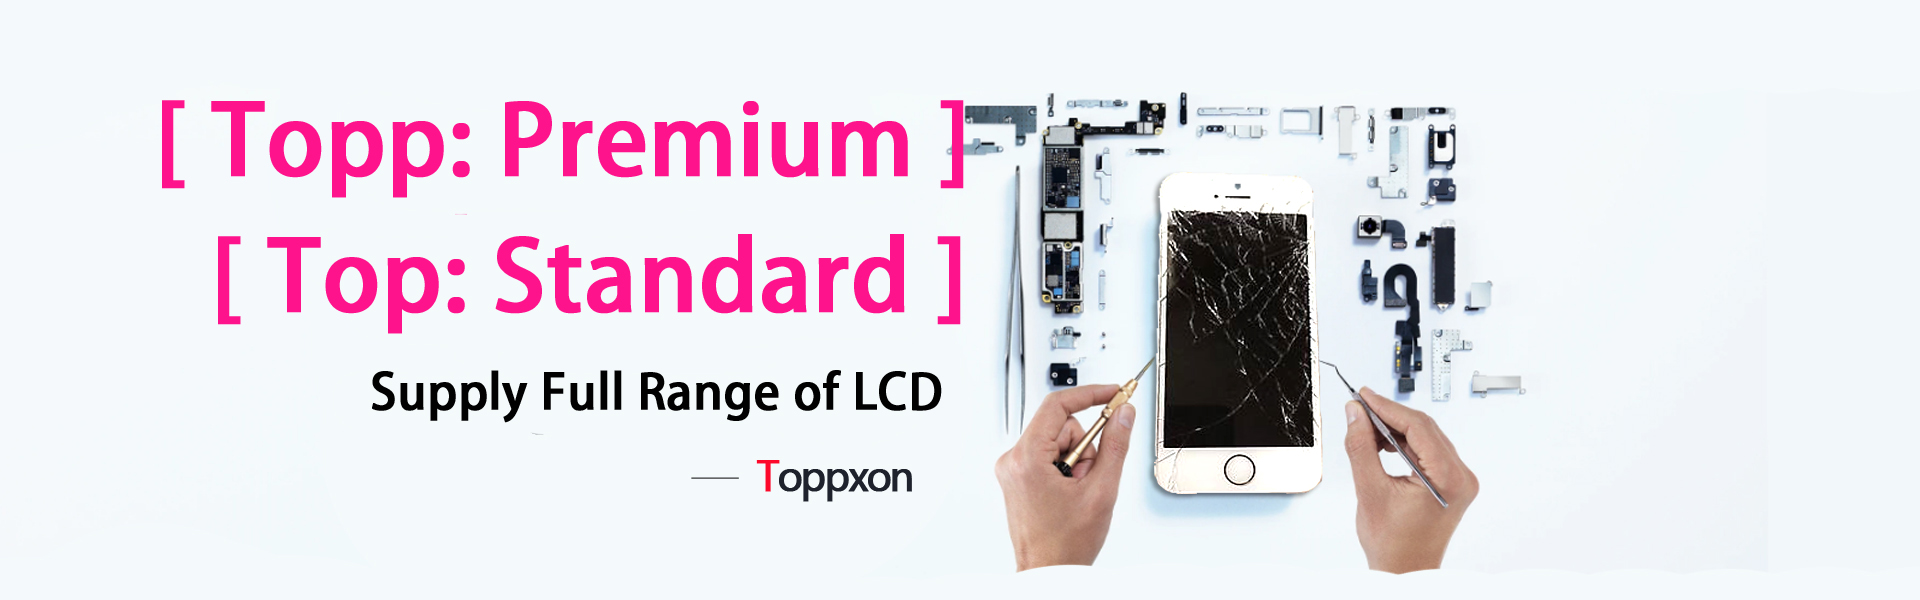 top premium top standard full range of lcd supplier